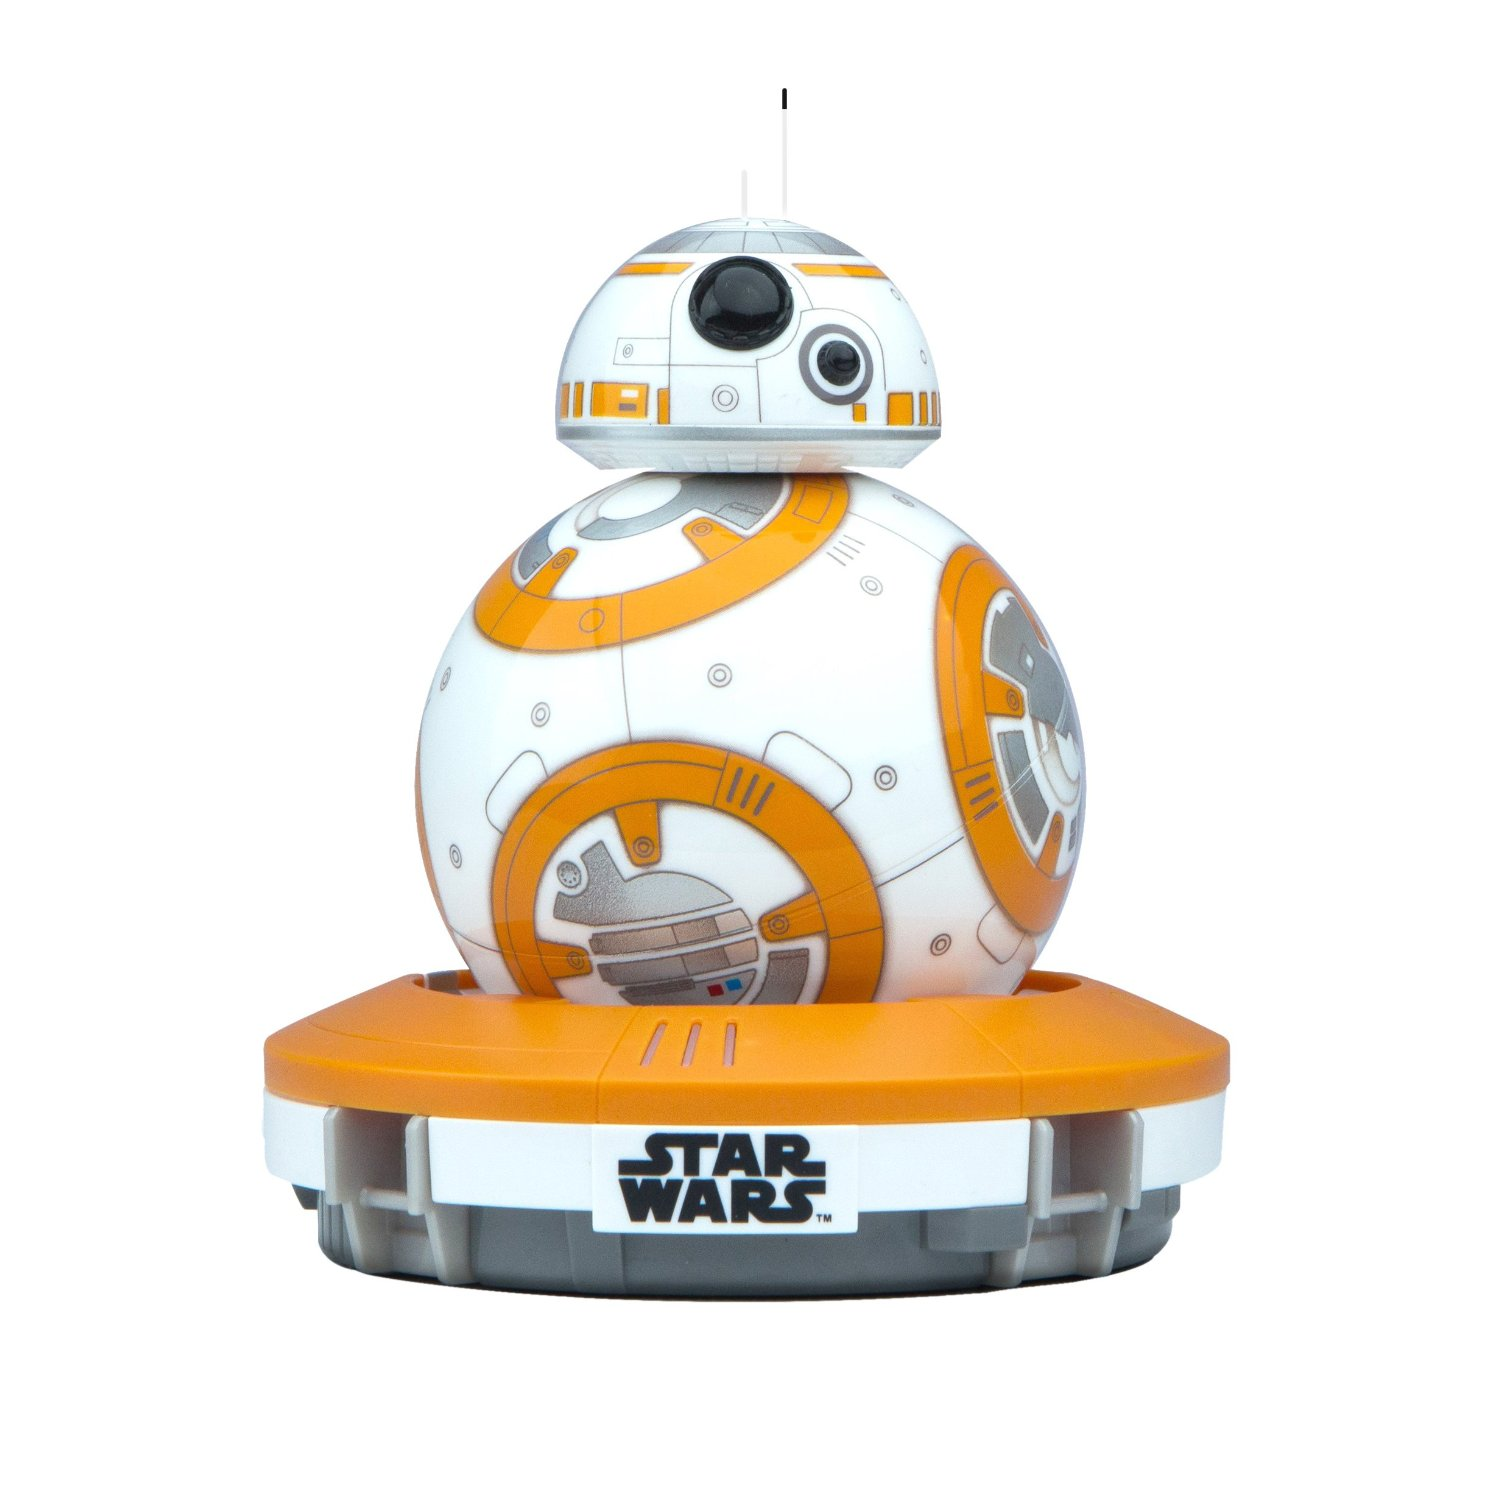 Own a Star-Wars Robot – your own BB-8 Droid